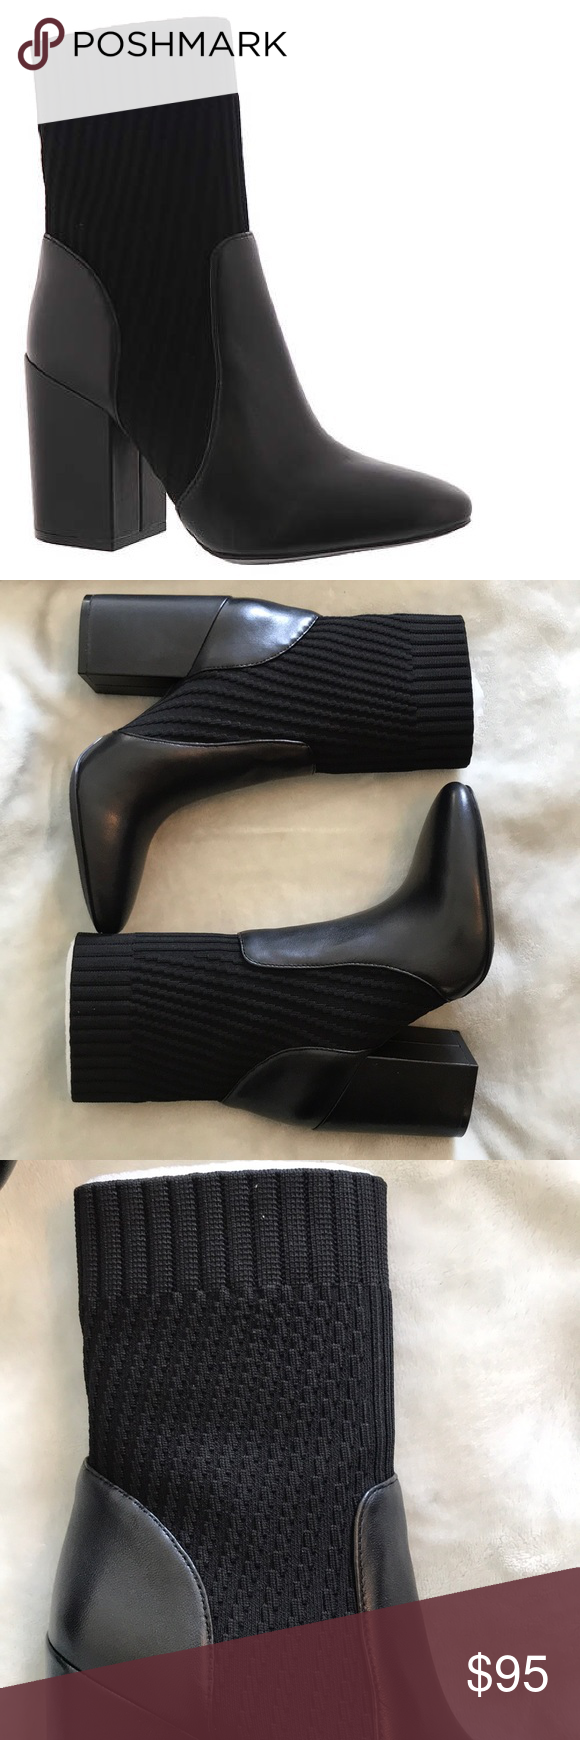 826ea445d17 Vince Camuto Diandra black bootie Slip right on Stretchy fabric Very  comfortable to wear Vince Camuto Shoes Ankle Boots   Booties